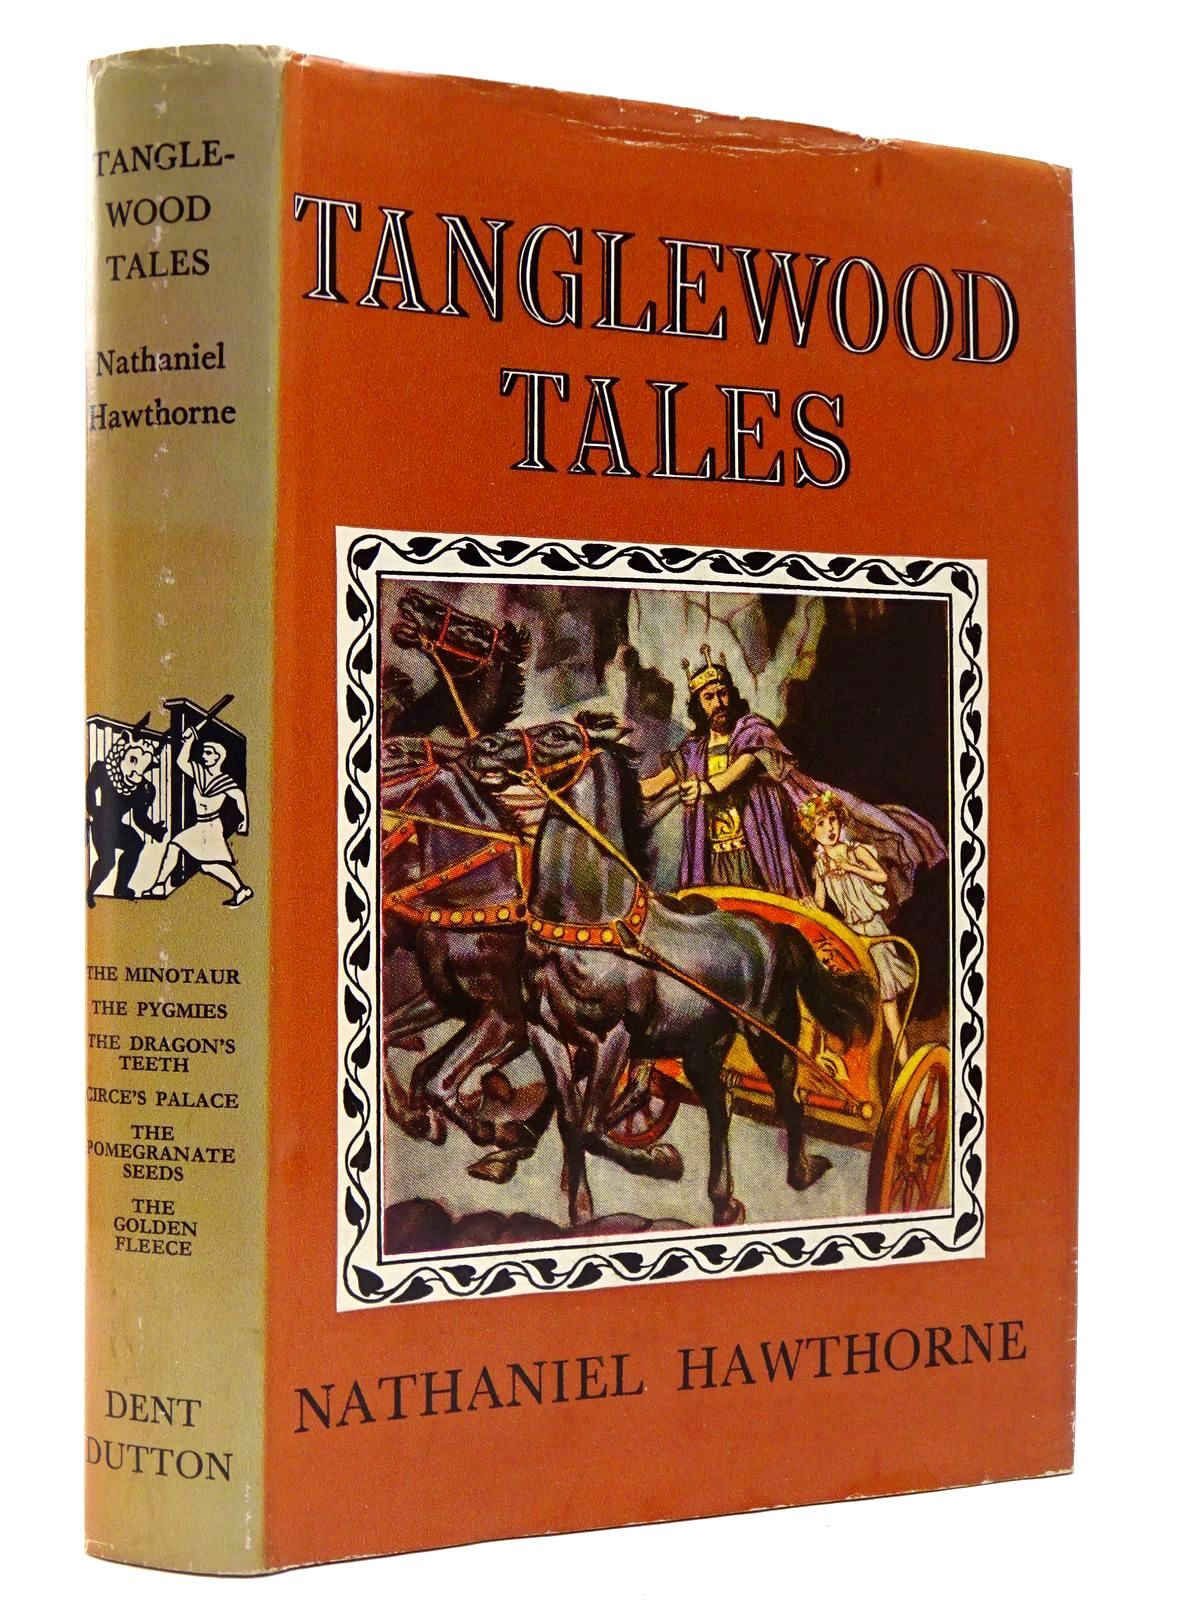 Photo of TANGLEWOOD TALES written by Hawthorne, Nathaniel illustrated by Van Abbe, S. published by J.M. Dent & Sons Ltd. (STOCK CODE: 2129437)  for sale by Stella & Rose's Books